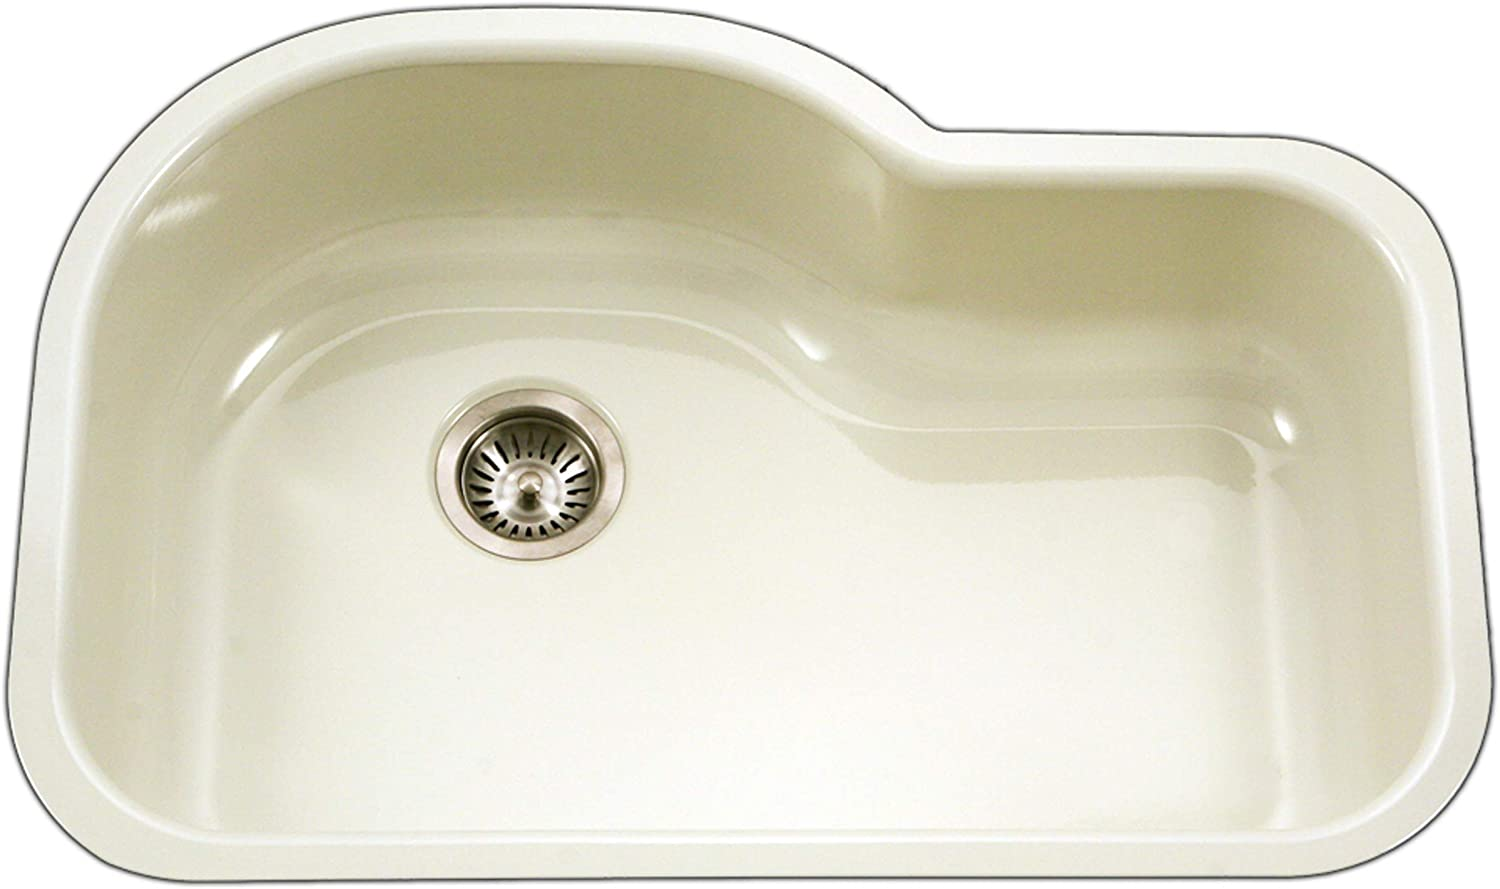 Houzer Pch 3700 Bq Porcela Series Porcelain Enamel Steel Undermount Offset Single Bowl Kitchen Sink Biscuit